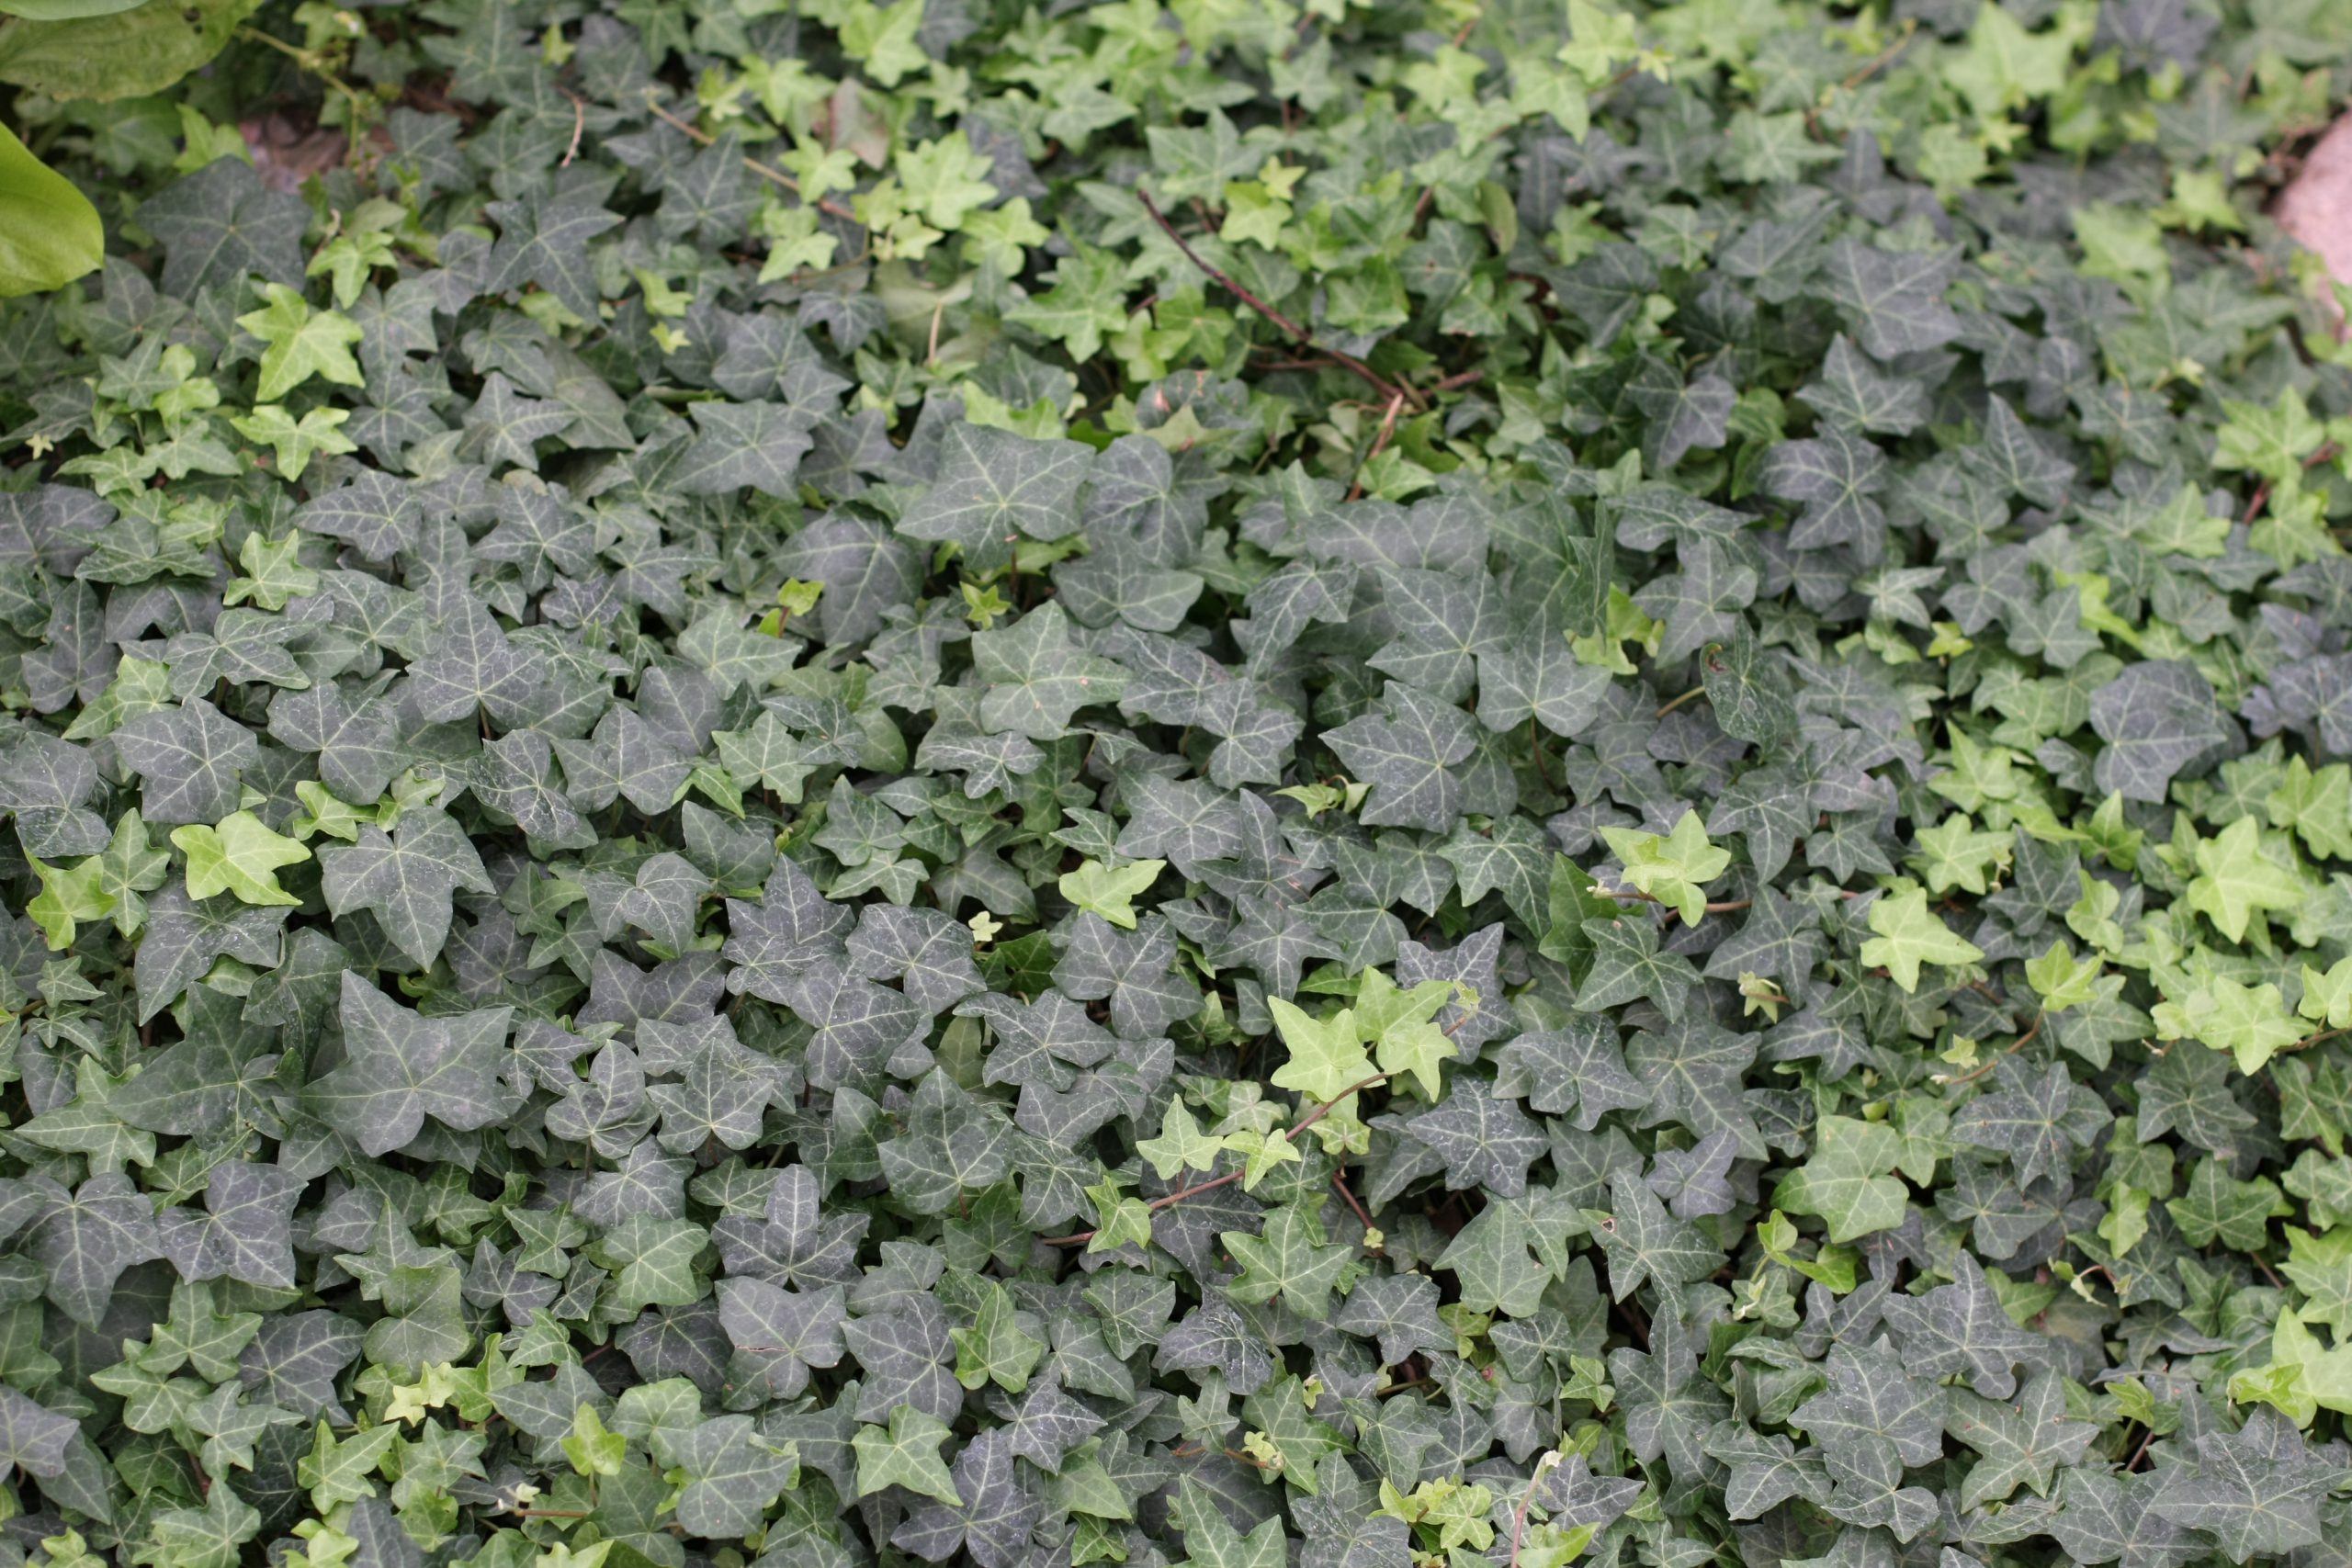 A blanket of dark and light green ivy.